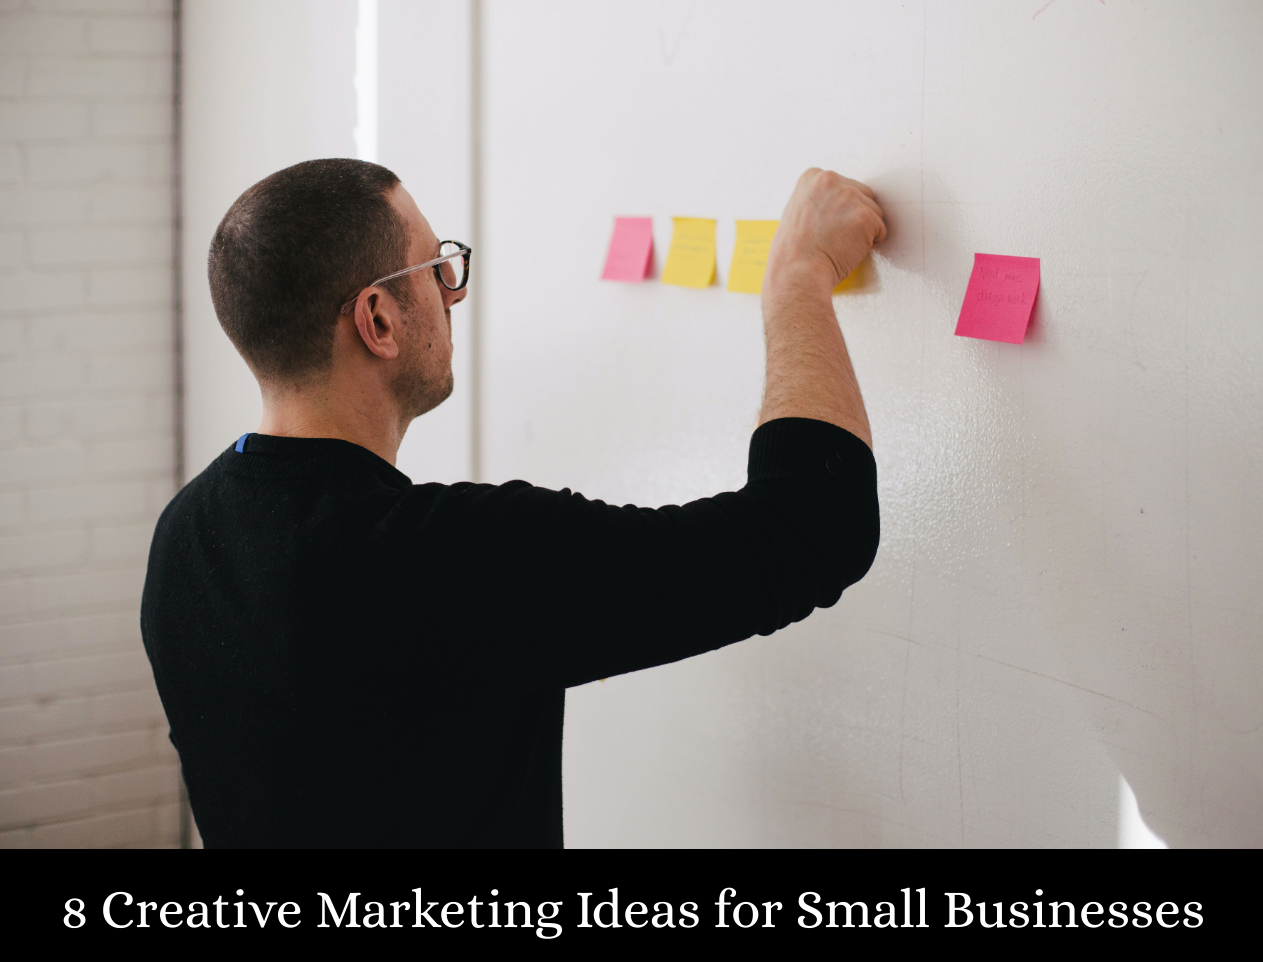 8 Creative Marketing Ideas for Small Businesses